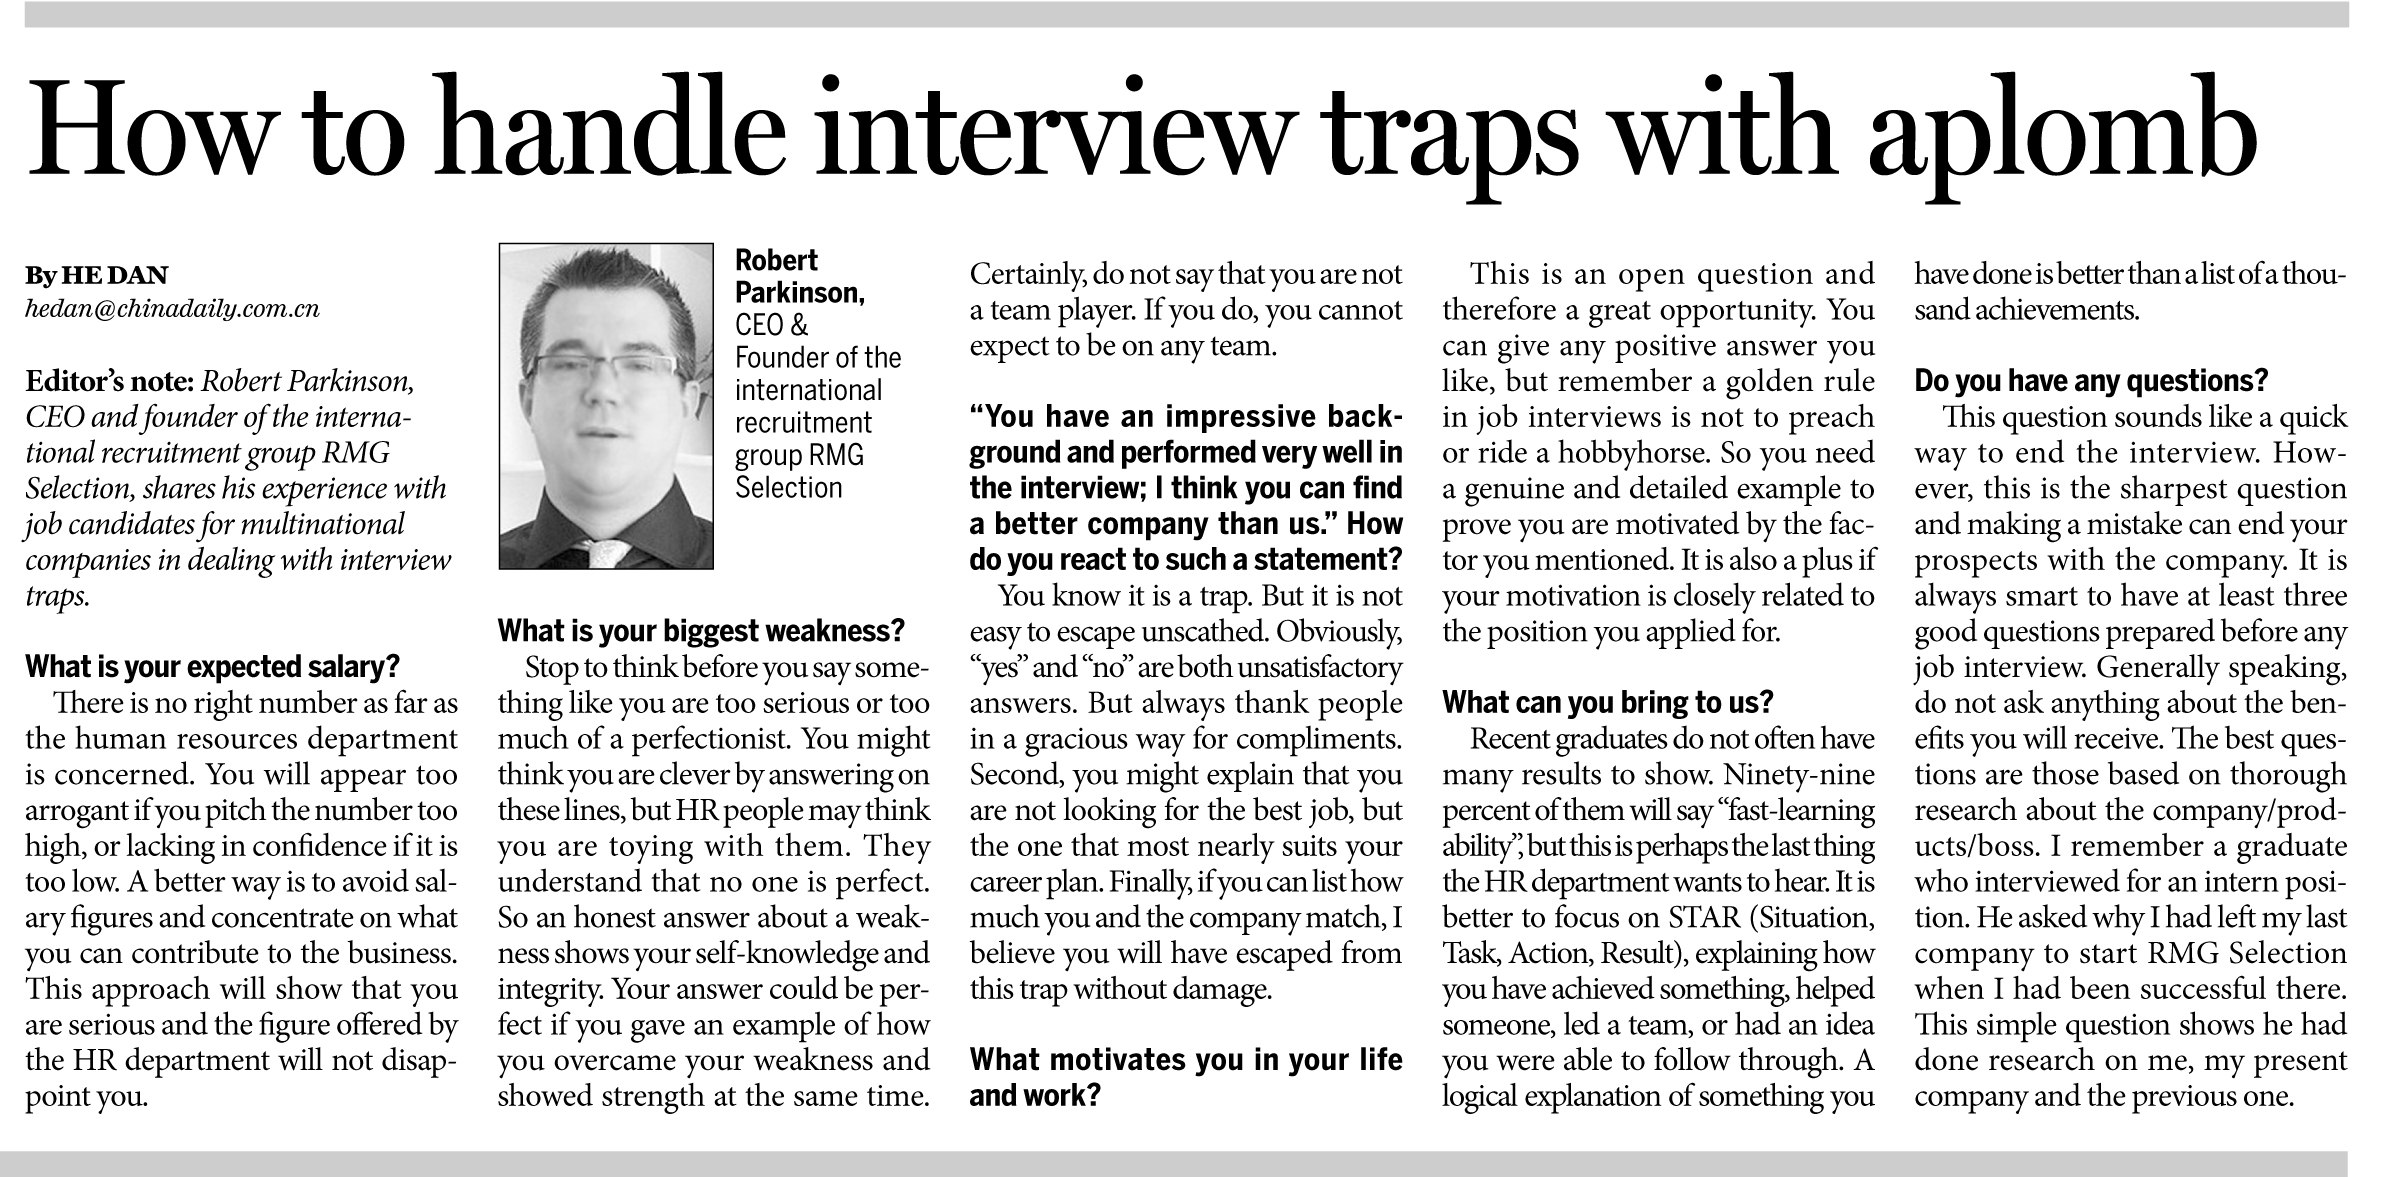 rmg selection how to handle interview traps aplomb news daily 00000 20140825 m 008 300